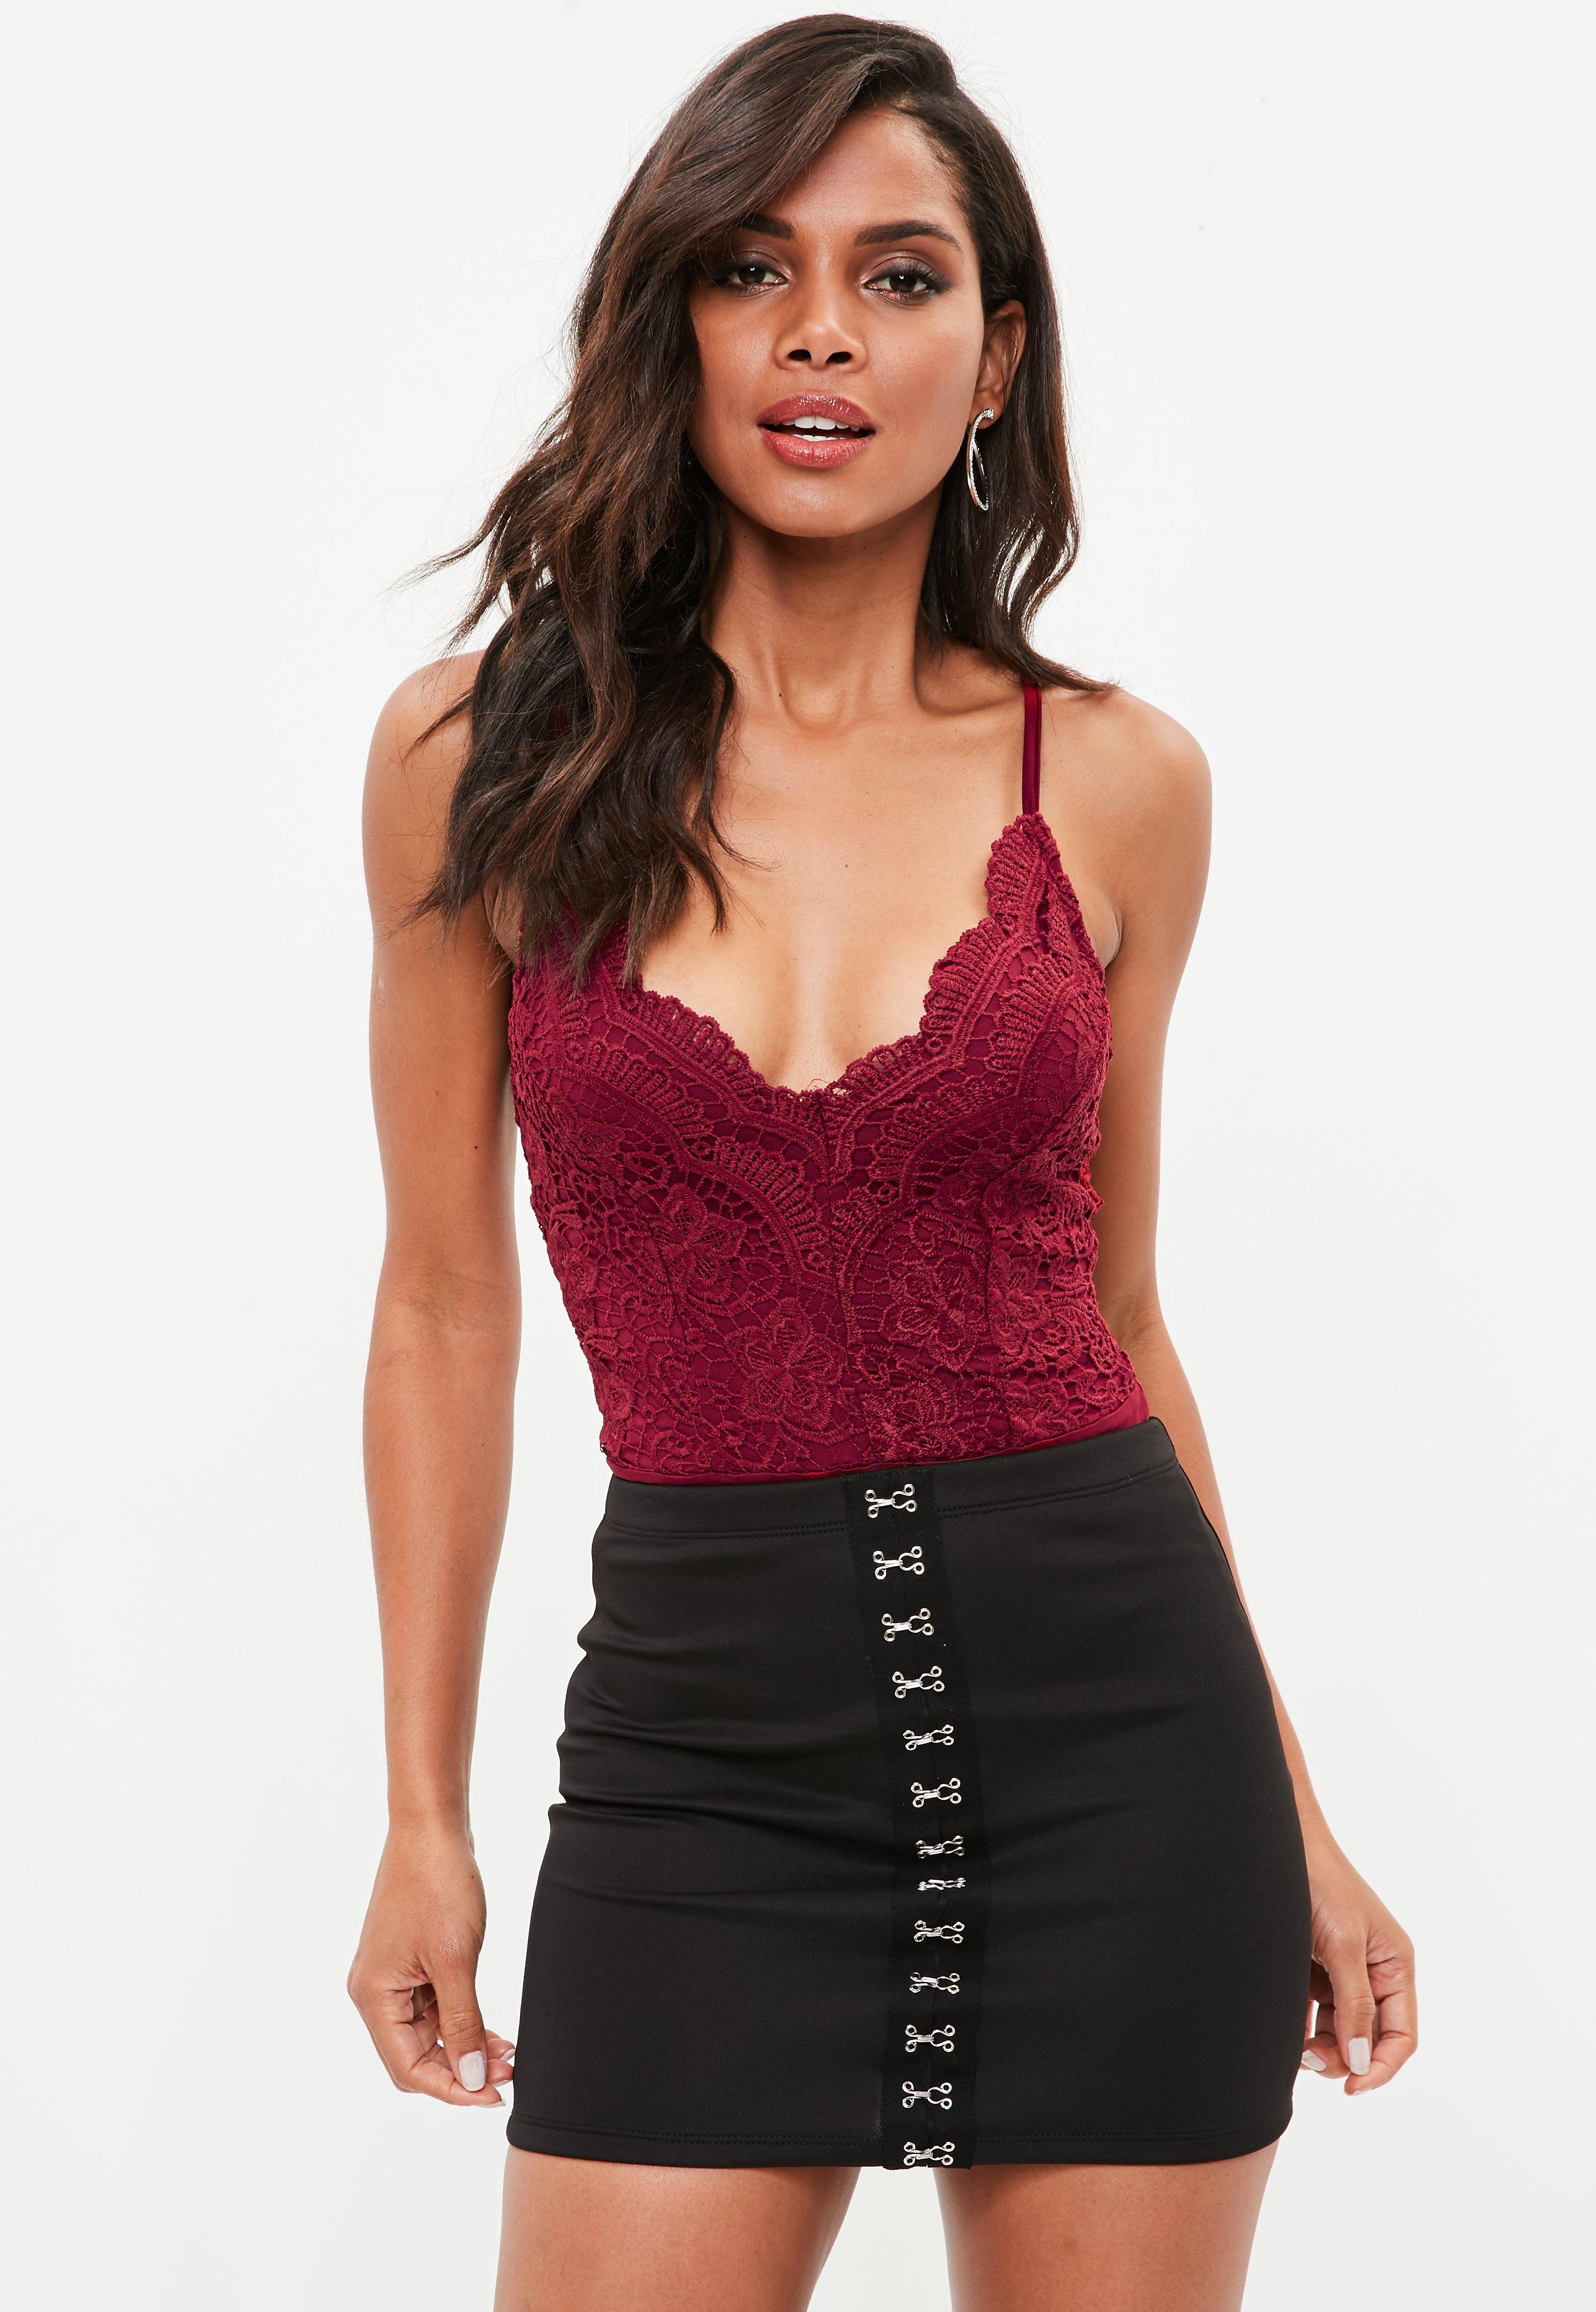 Lyst - Missguided Red Lace Cami Strap Bodysuit in Red 5b9d46562